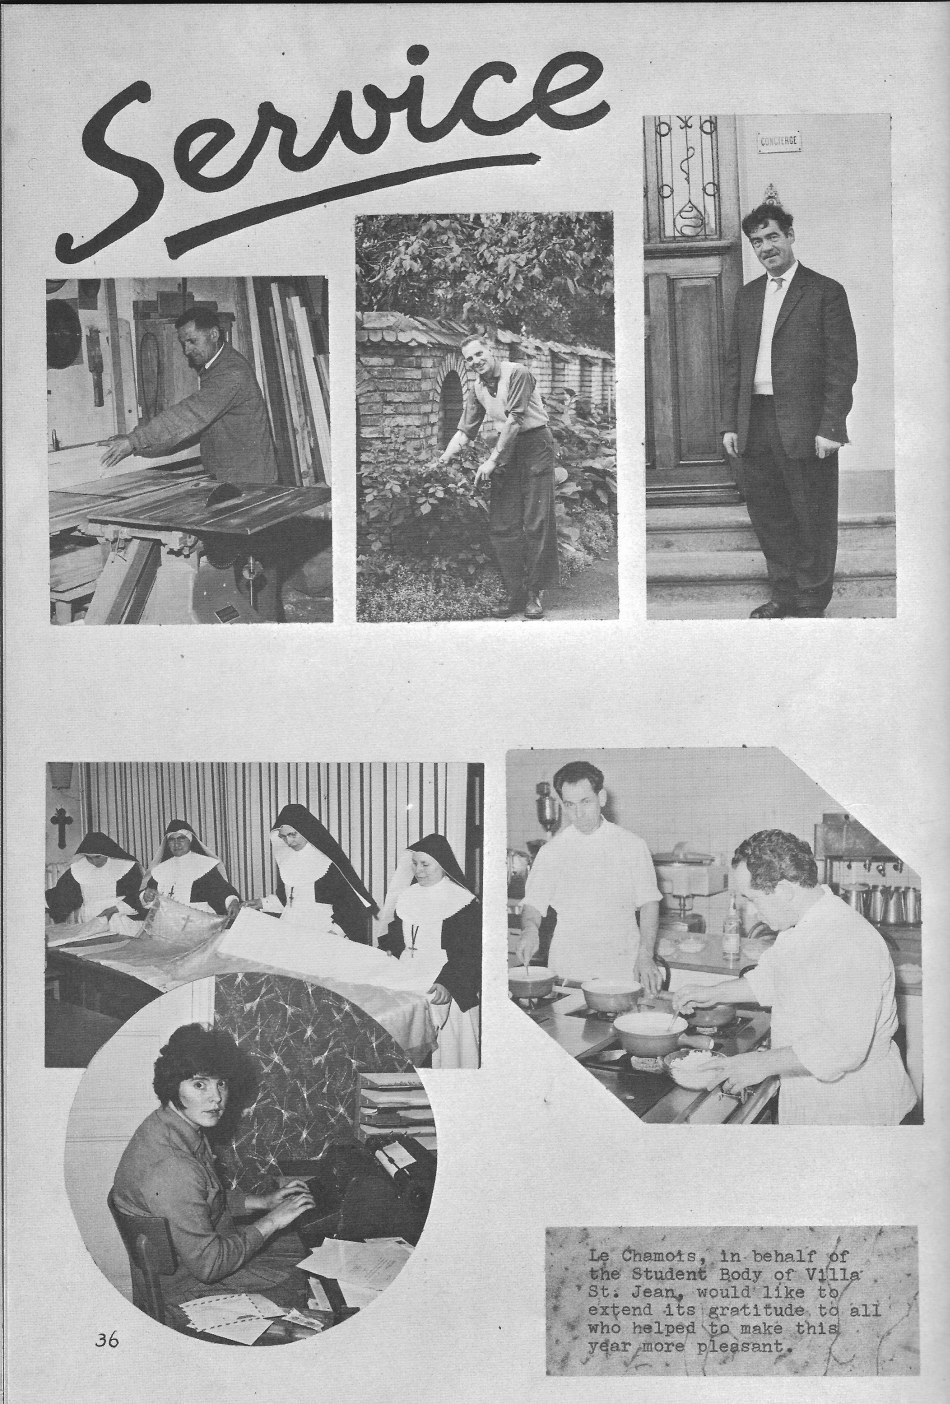 SERVICE Staff for  Villa Saint Jean International School  1964 Yearbook Le Chamois